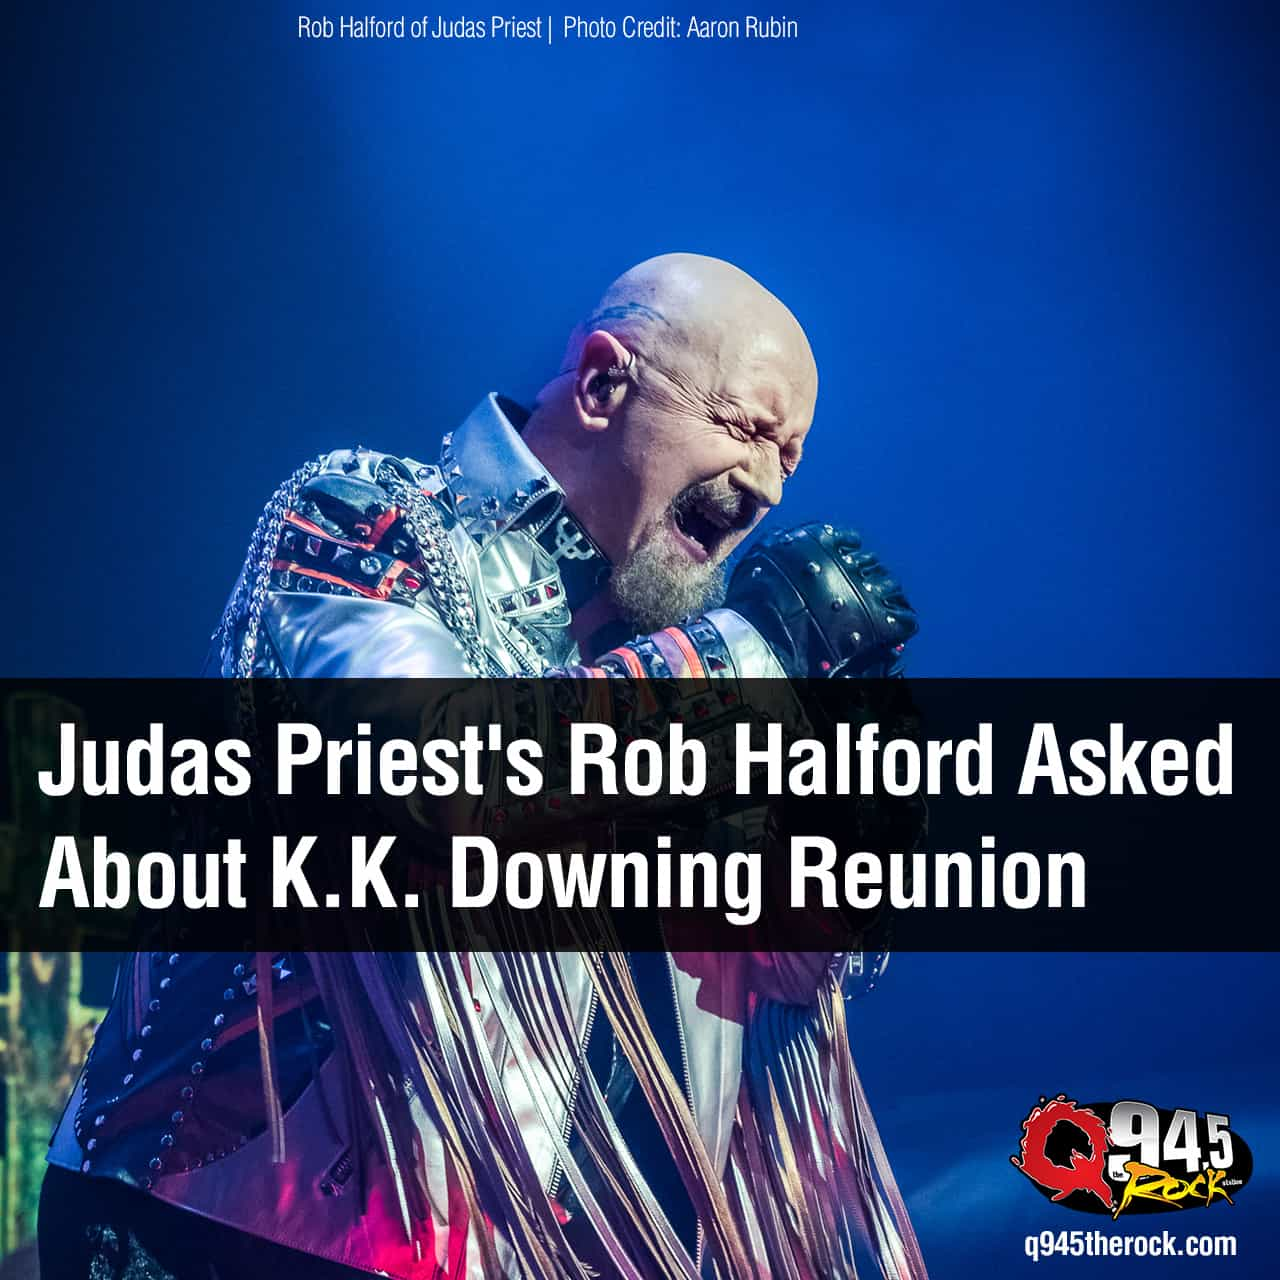 Judas Priest's Rob Halford Asked About K.K. Downing Reunion